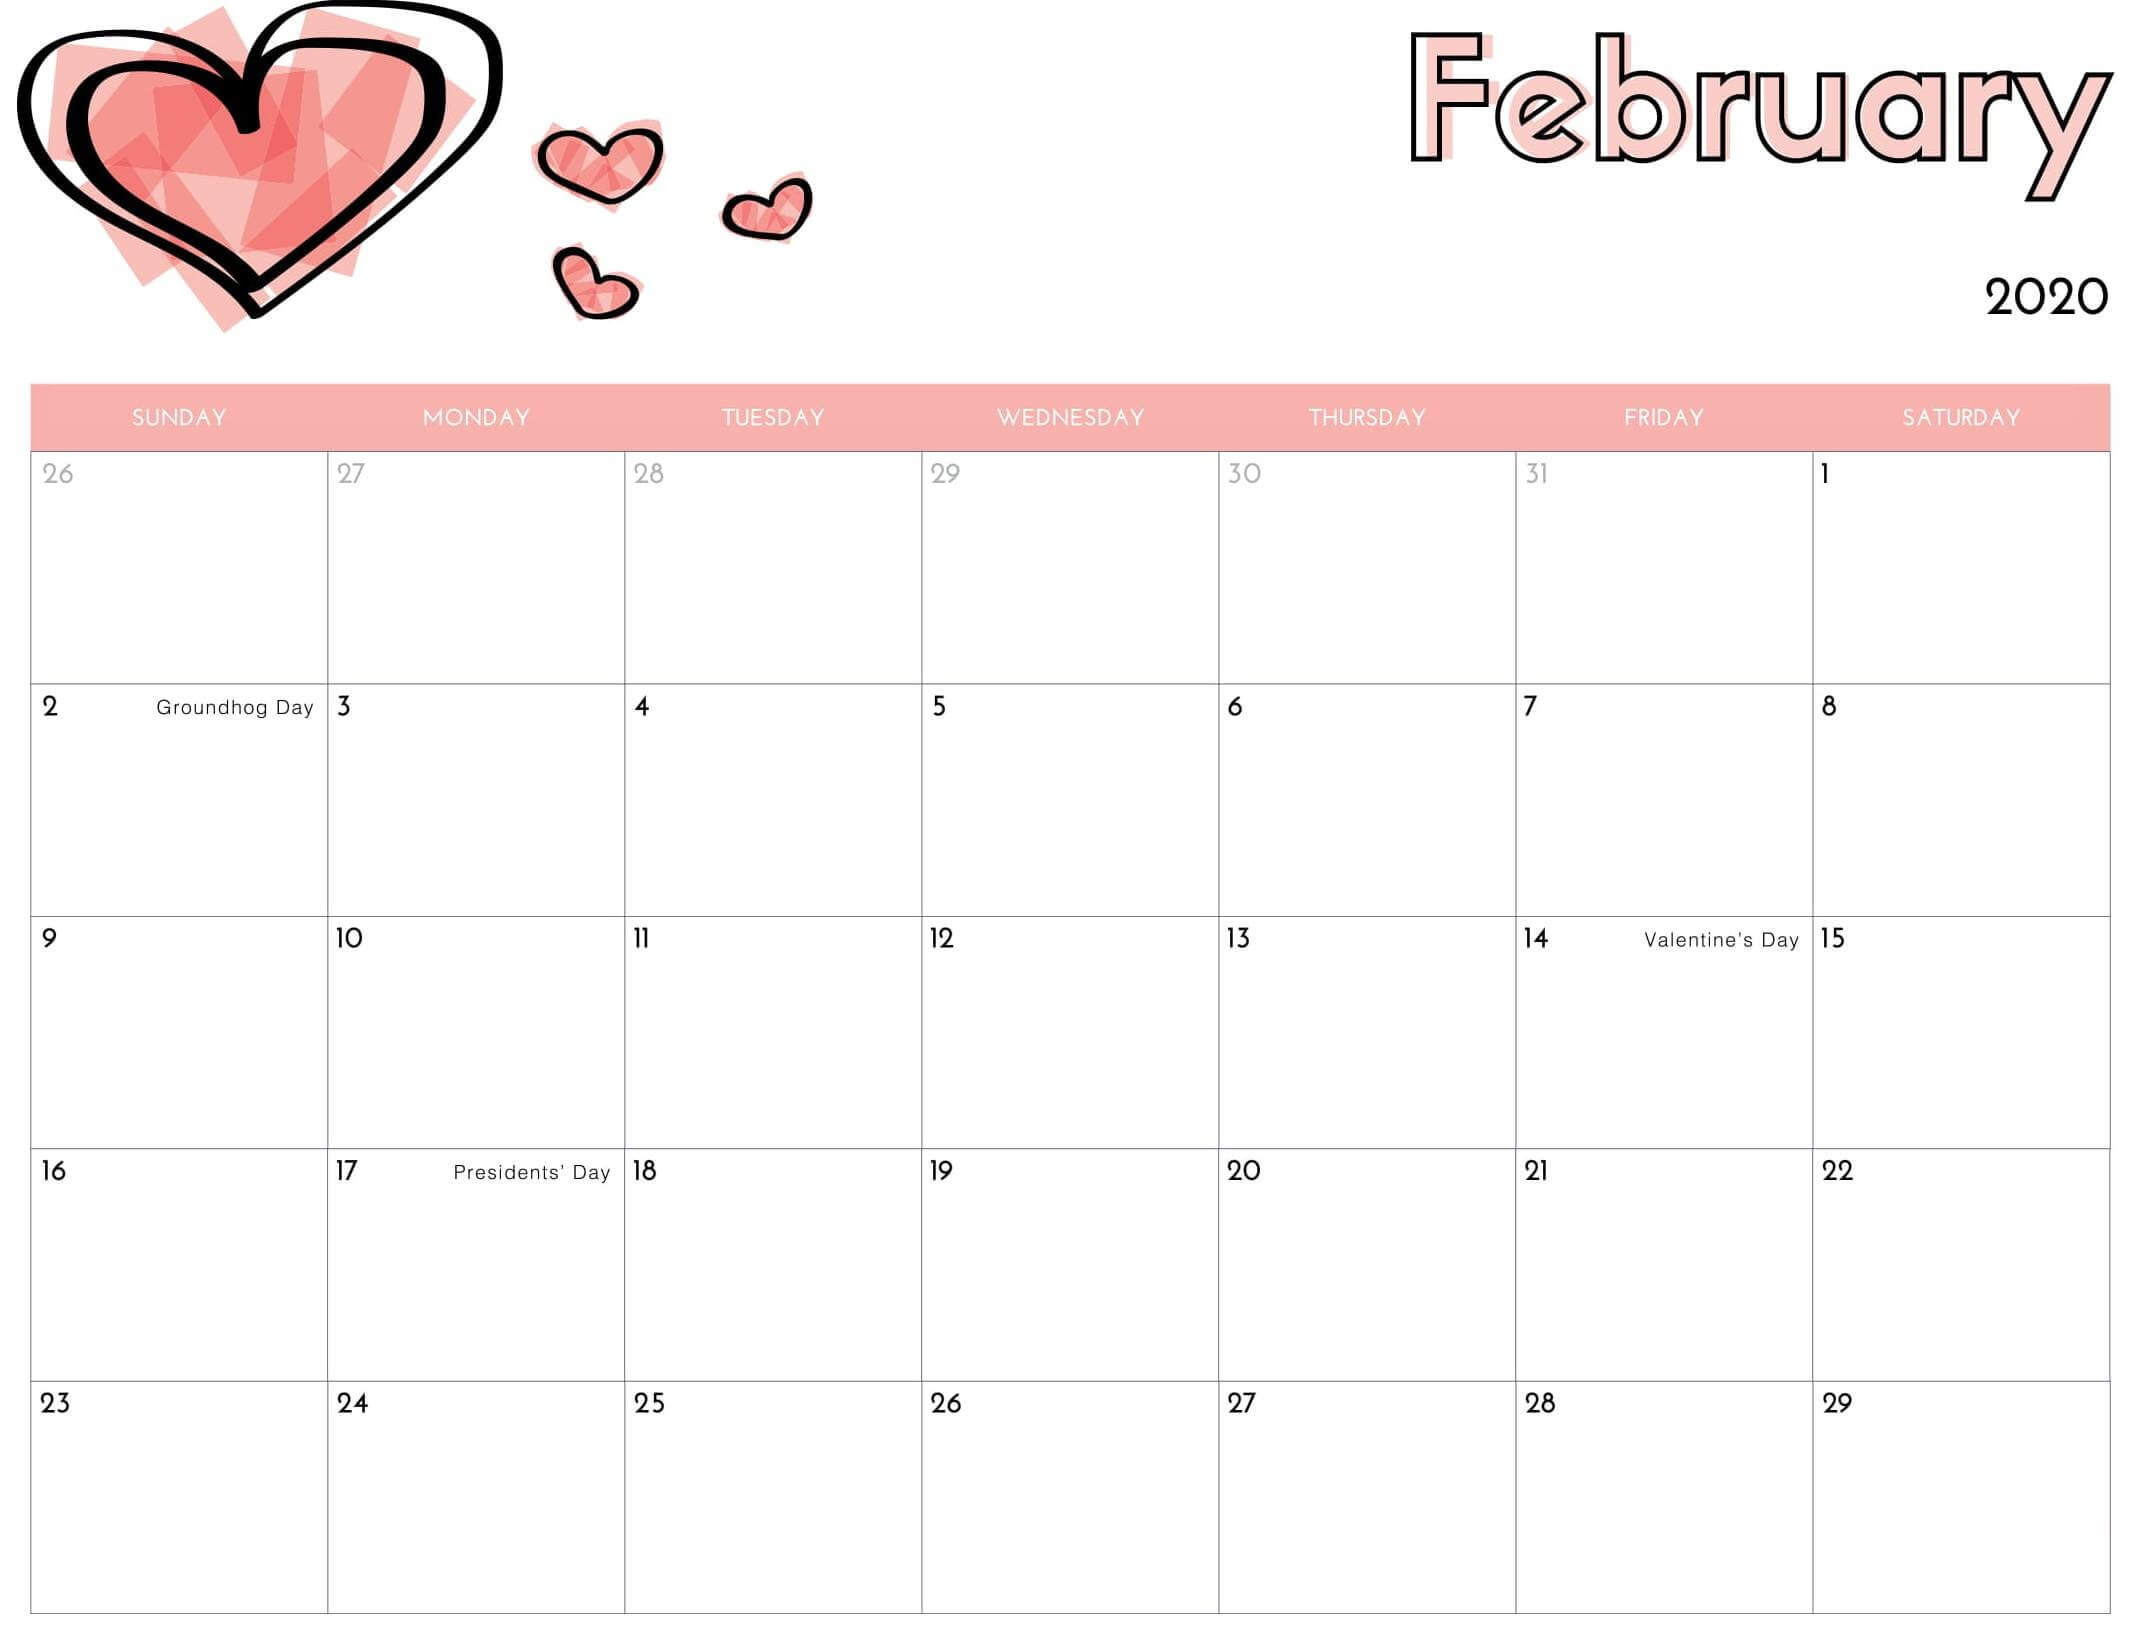 February 2020 Calendar US School Holidays